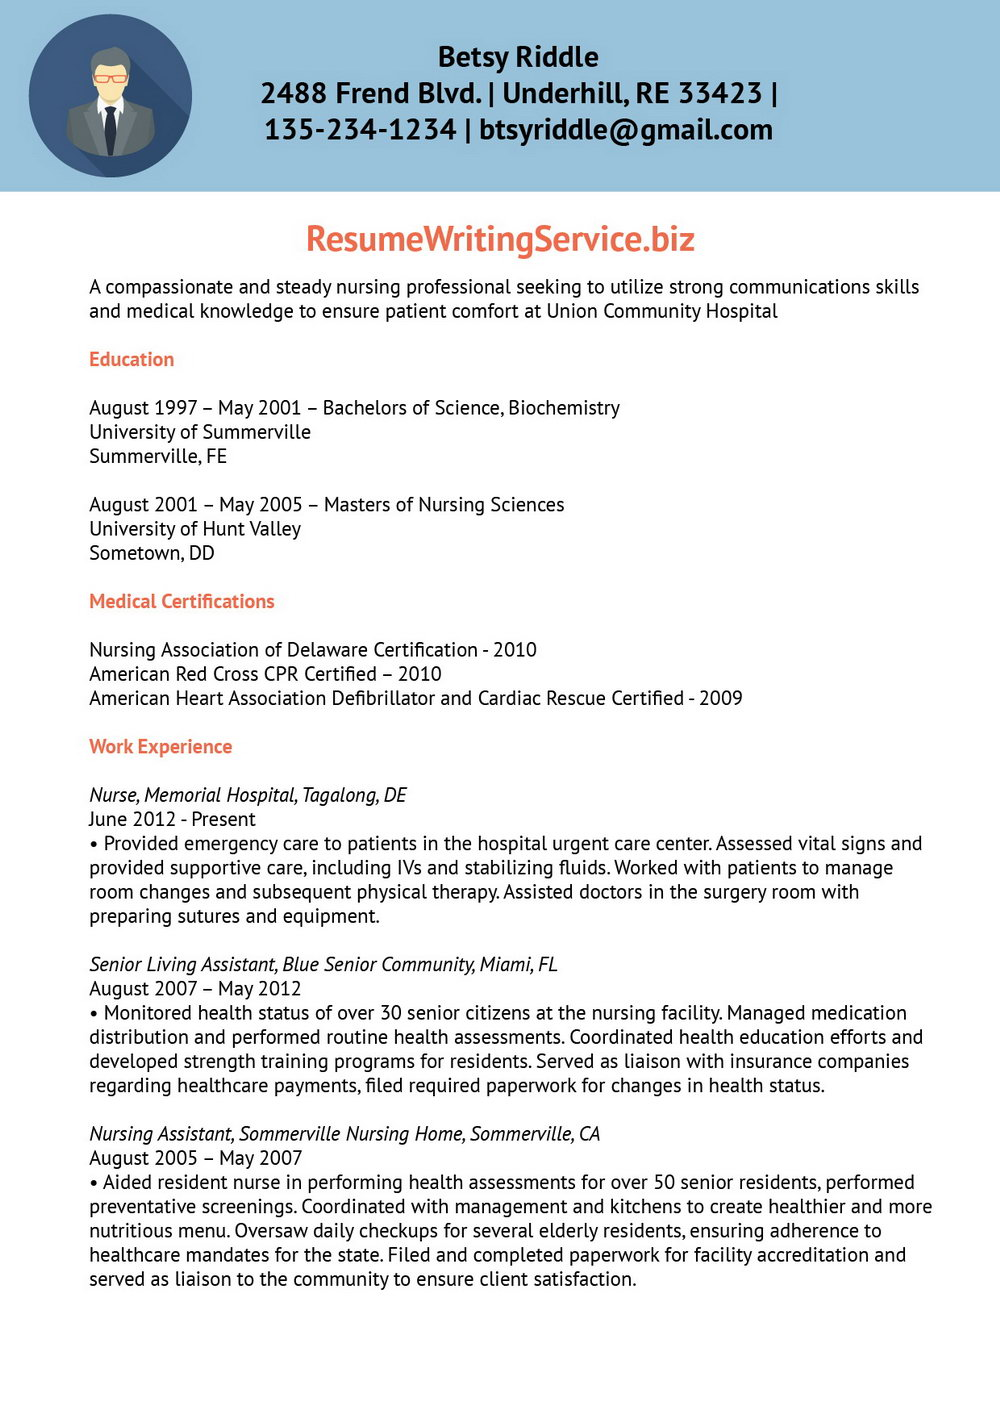 Resume Writing Services Melbourne Cbd